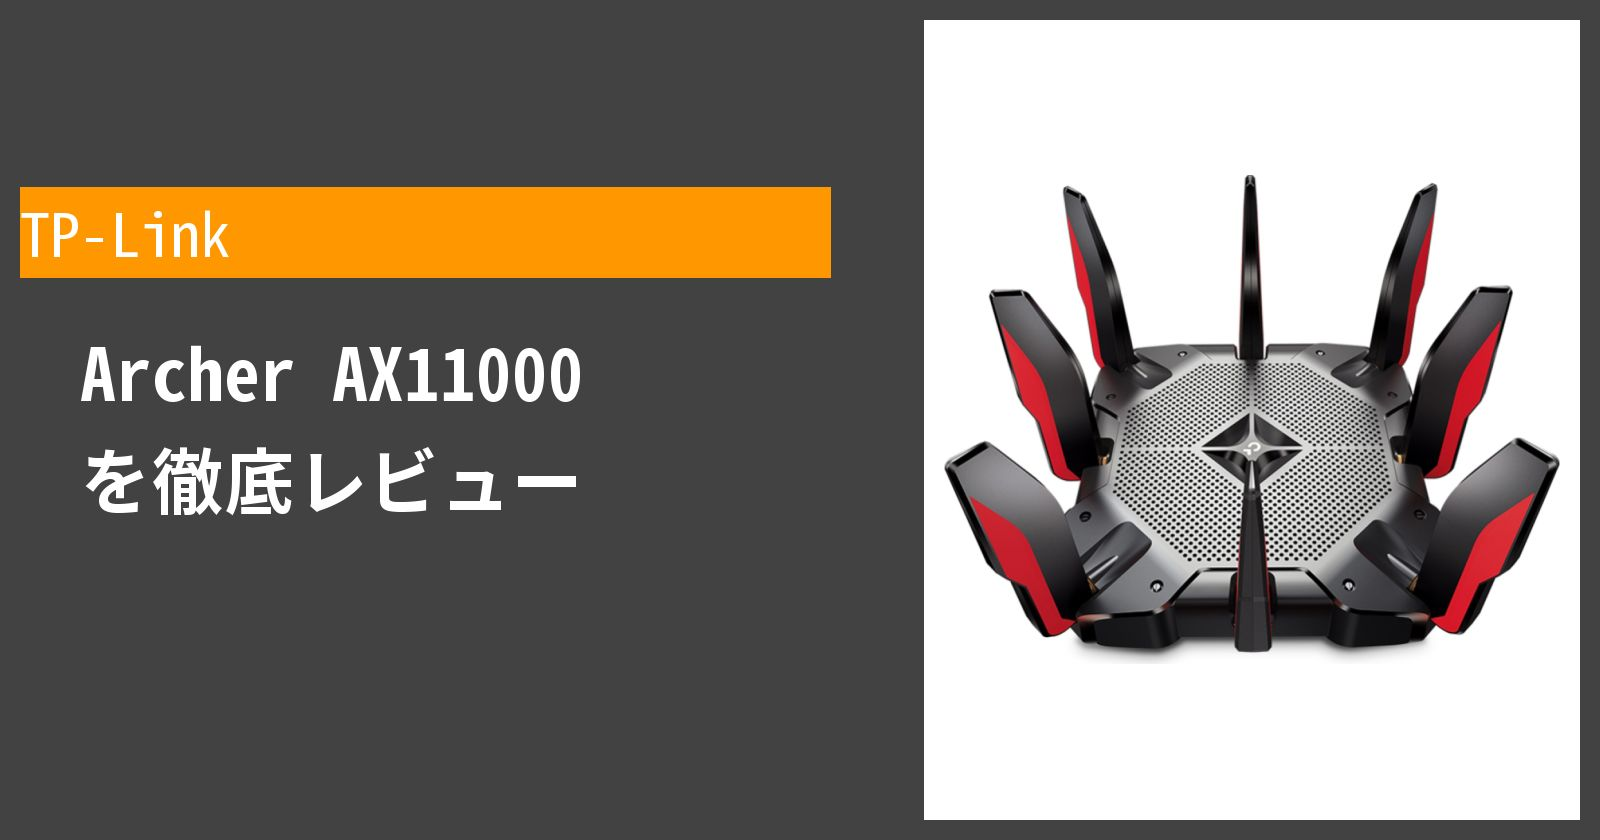 Archer AX11000を徹底評価